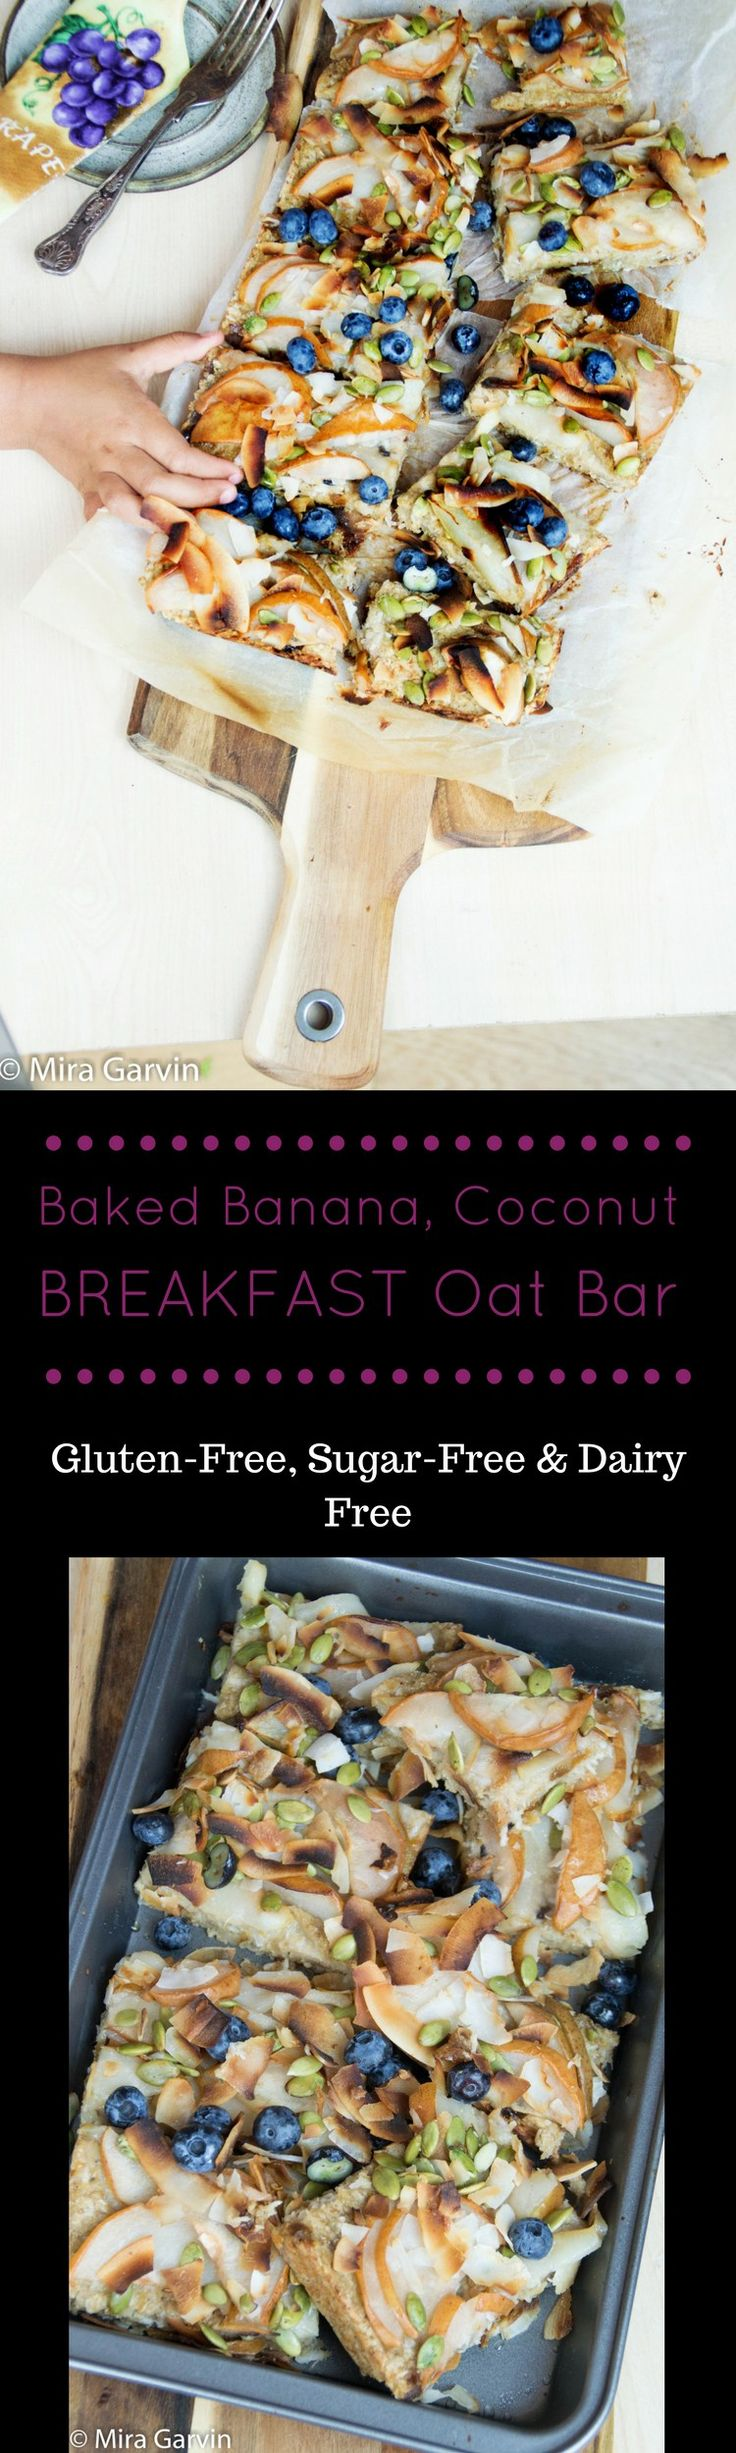 Baked Sugar-Free Banana, Coconut Breakfast Oat Bar